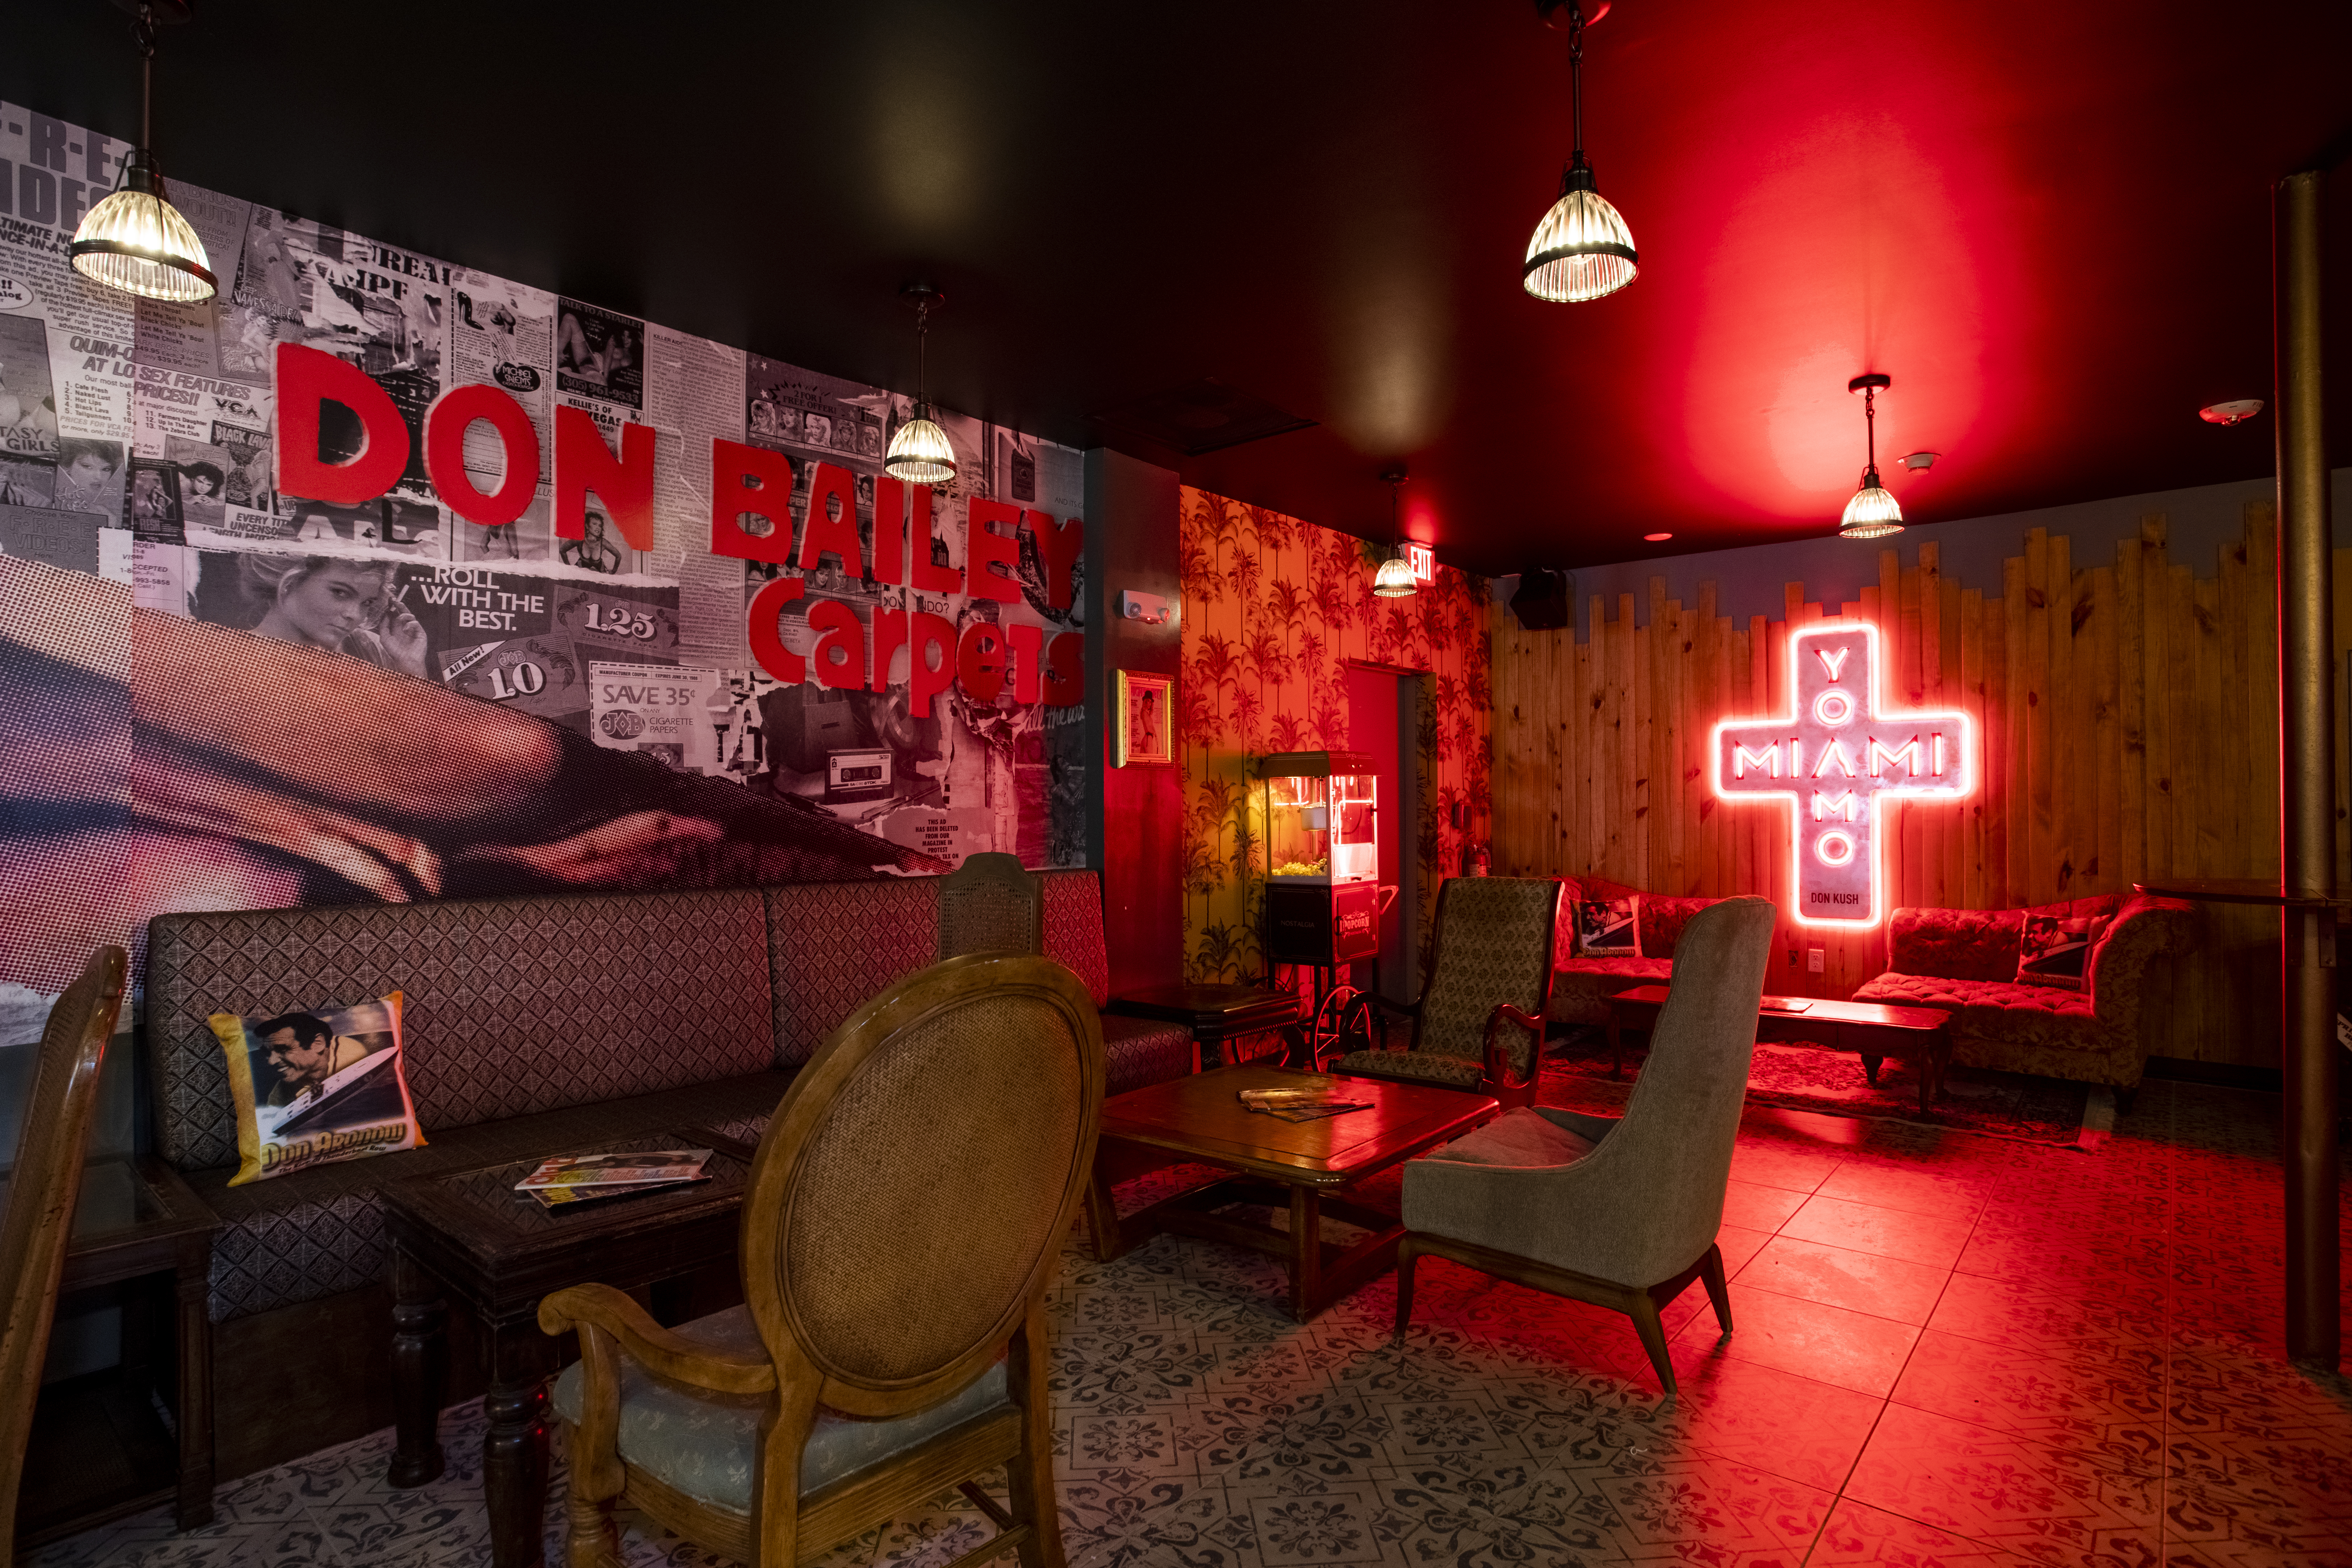 dark bar with red lighting and collage in the background